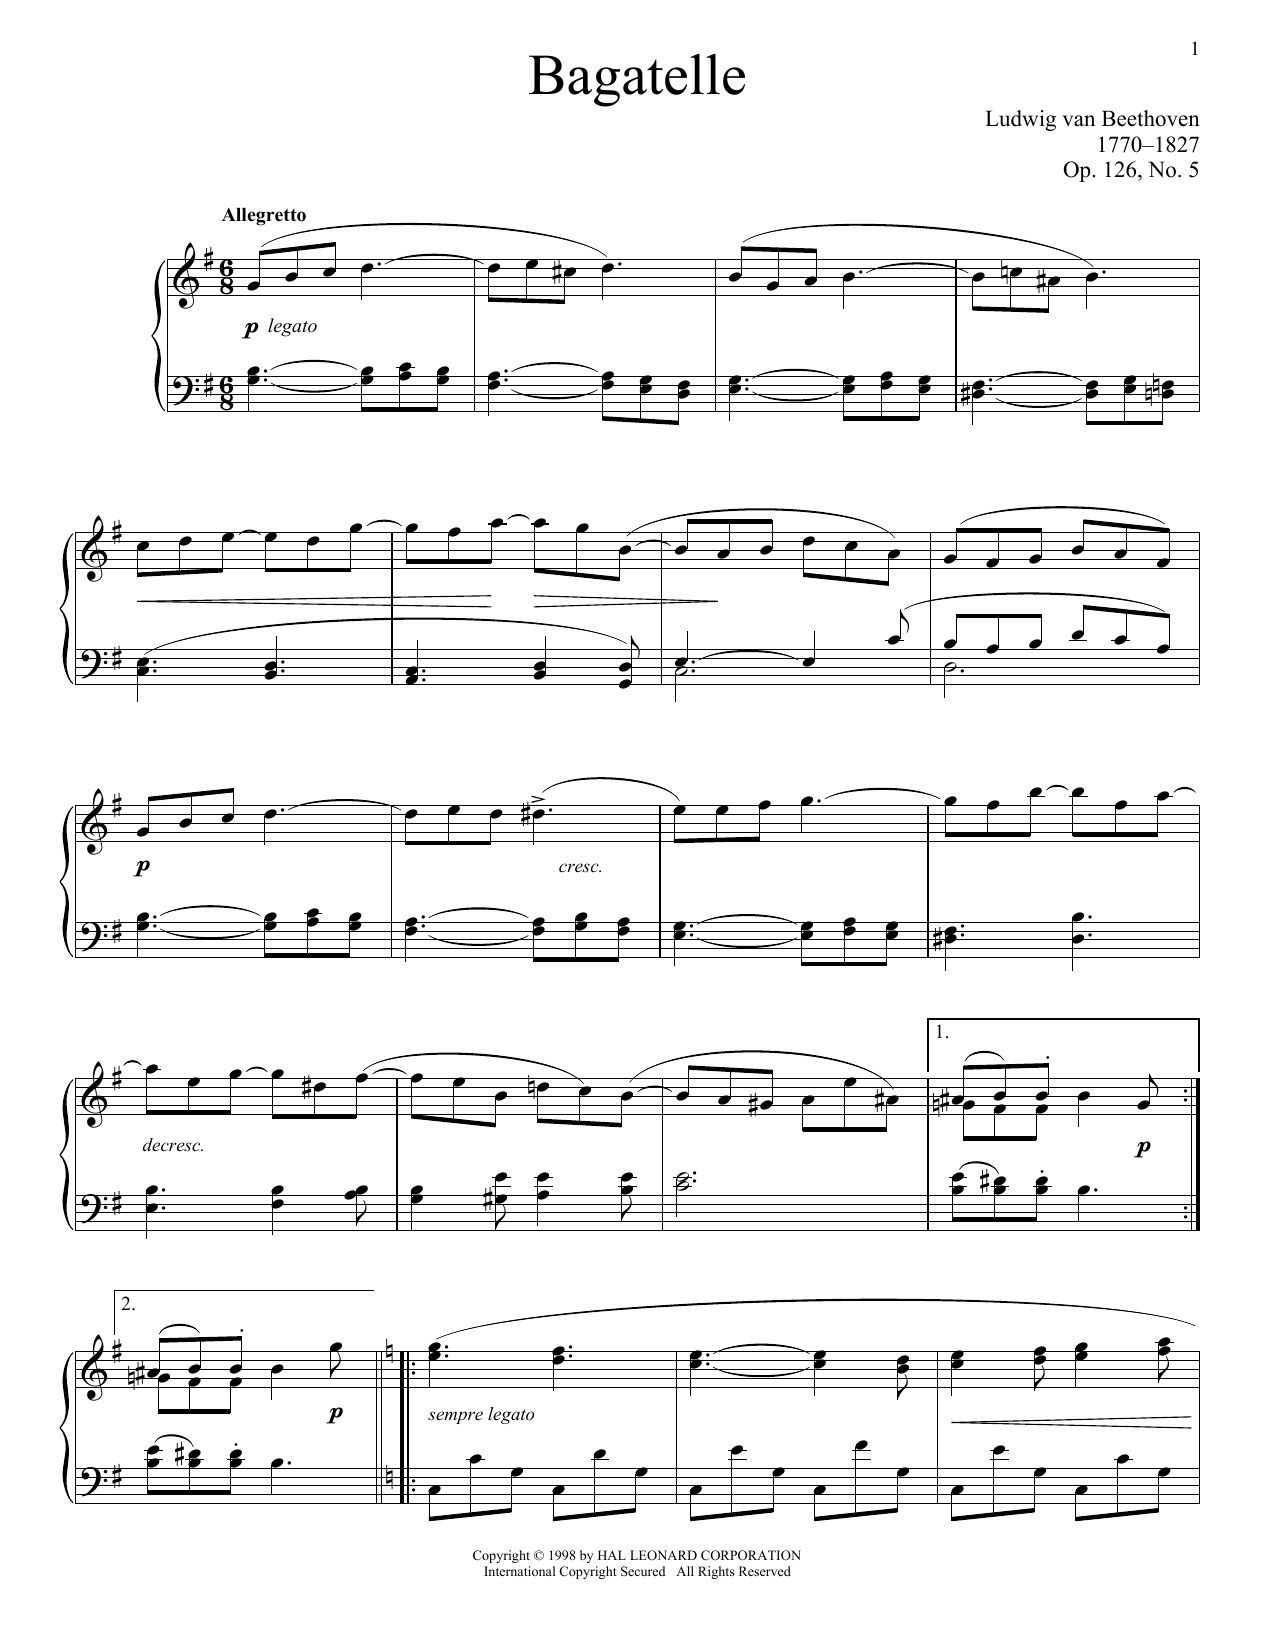 Download Ludwig van Beethoven 'Bagatelle in G, Op. 126, No. 5' Digital Sheet Music Notes & Chords and start playing in minutes